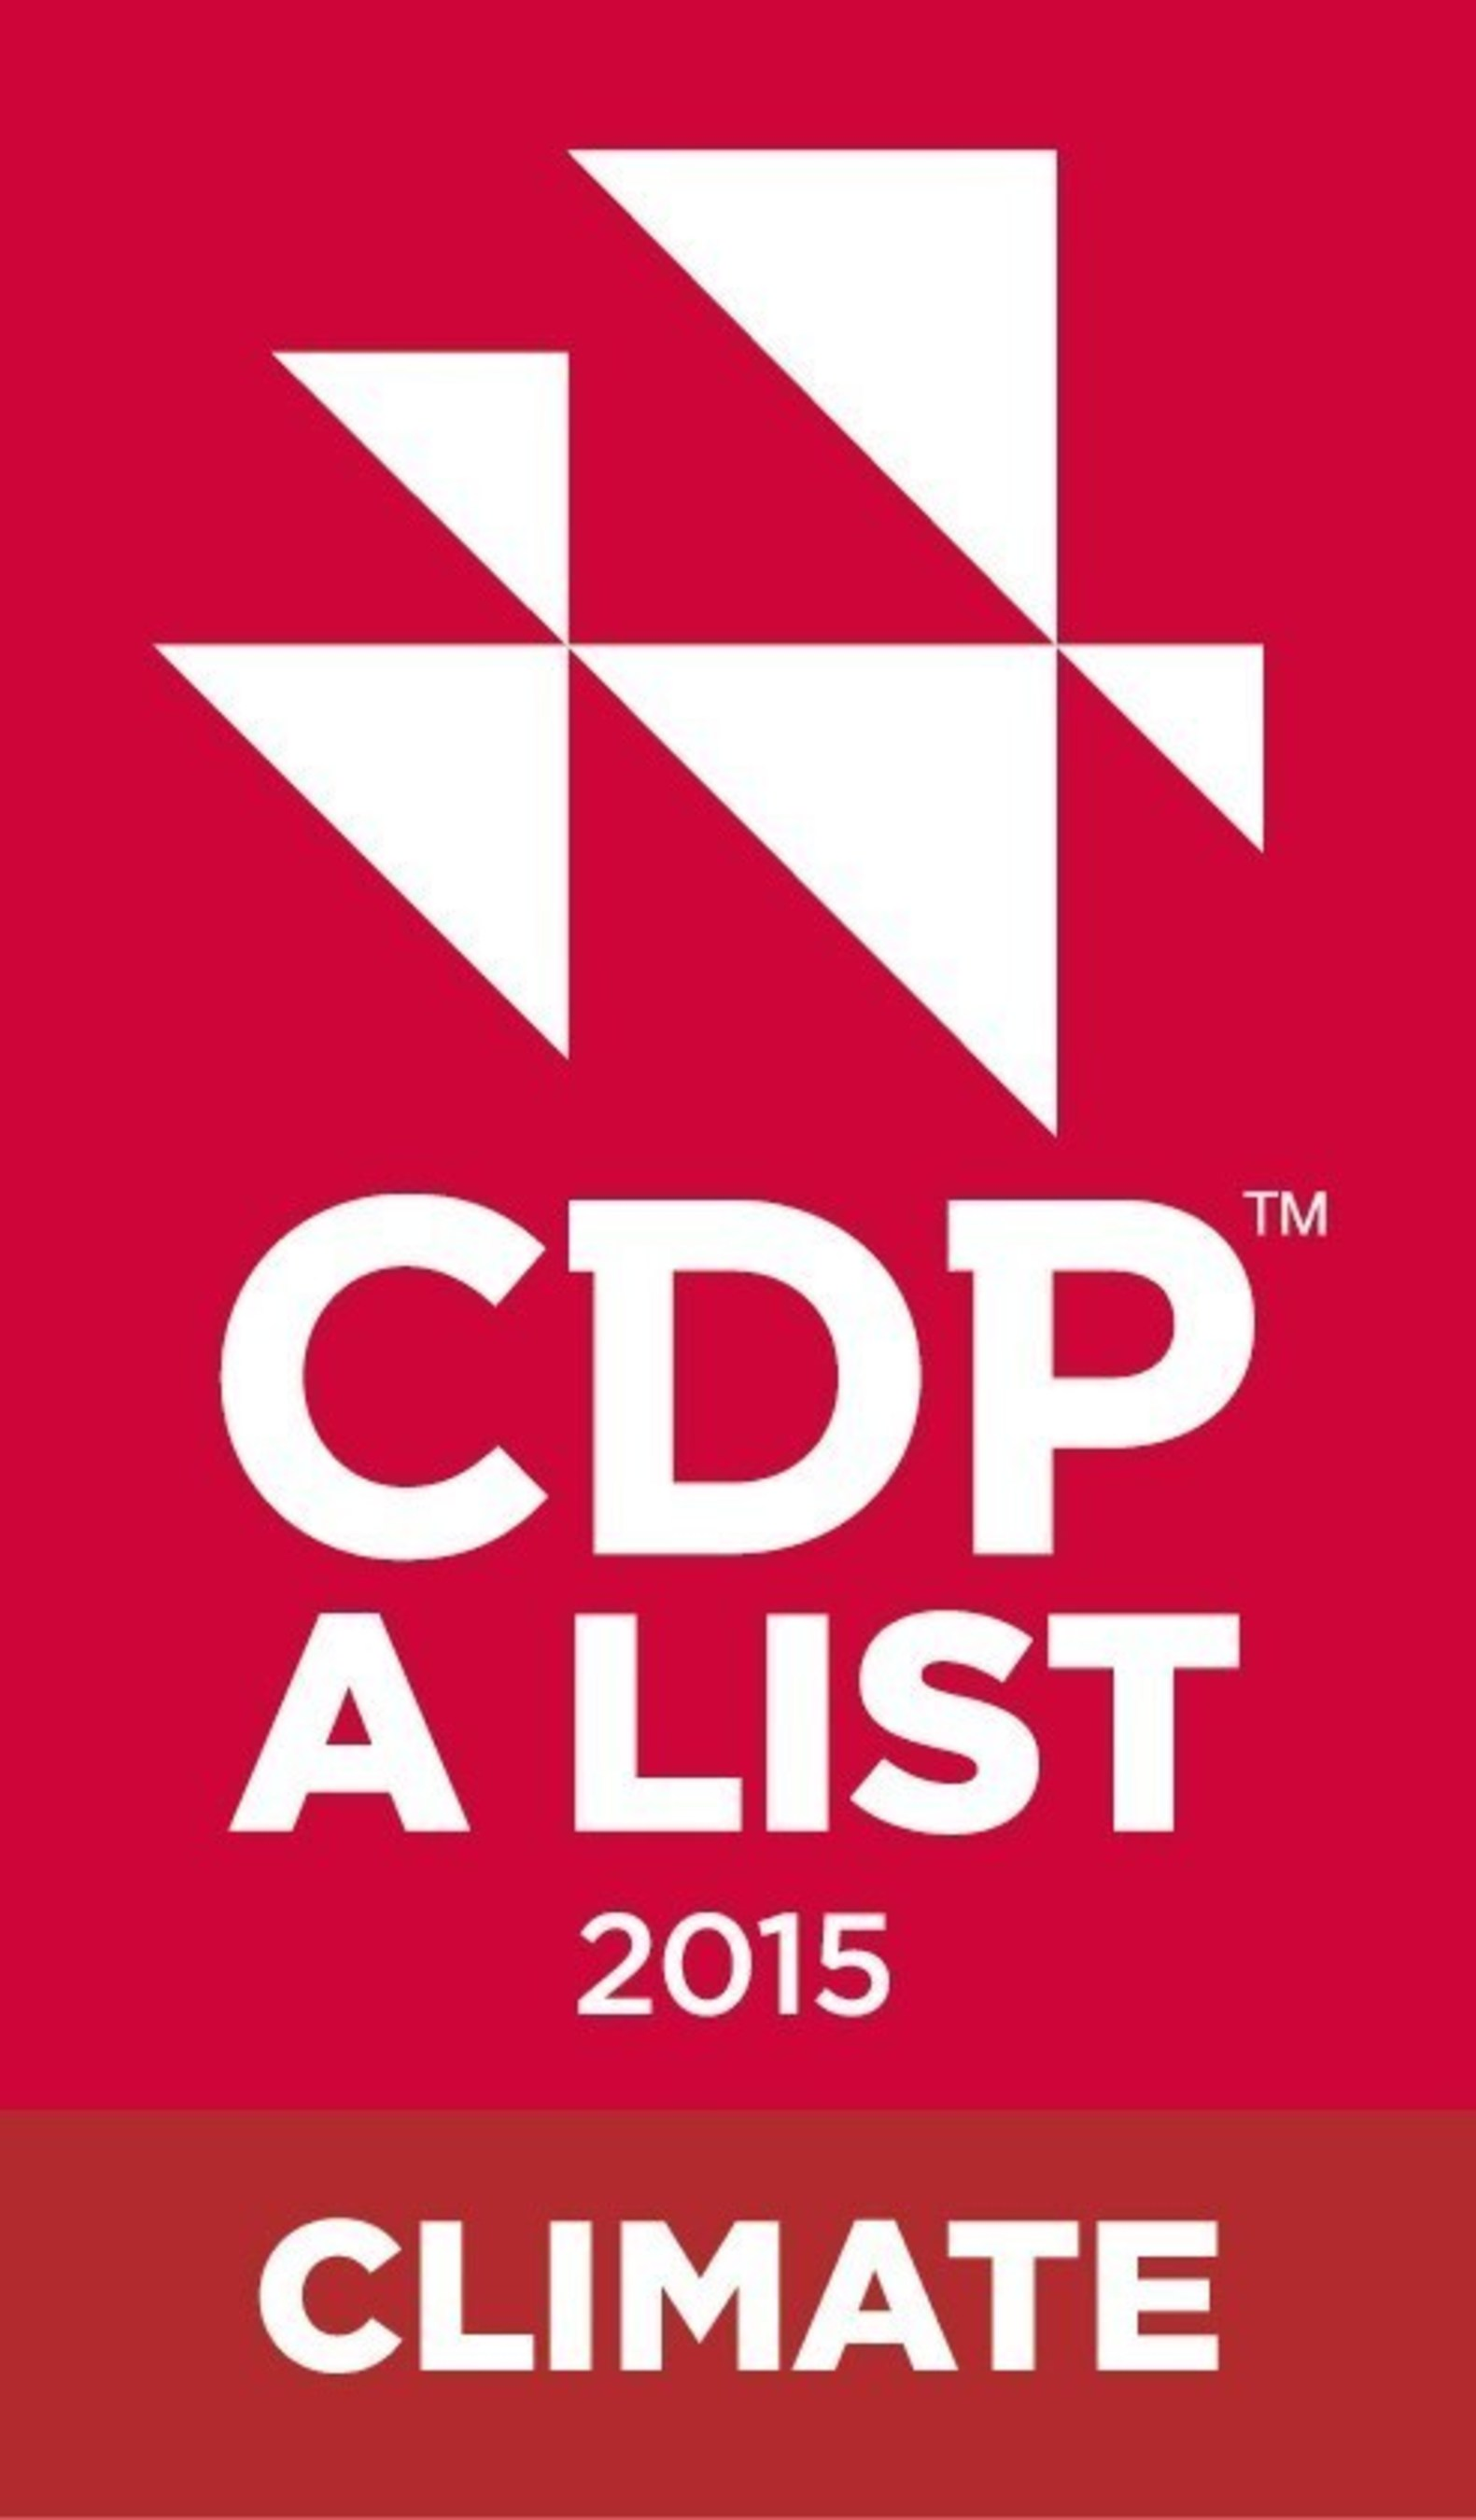 The Mosaic Company Achieves Recognition as a World Leader on CDP's 2015 Climate A List